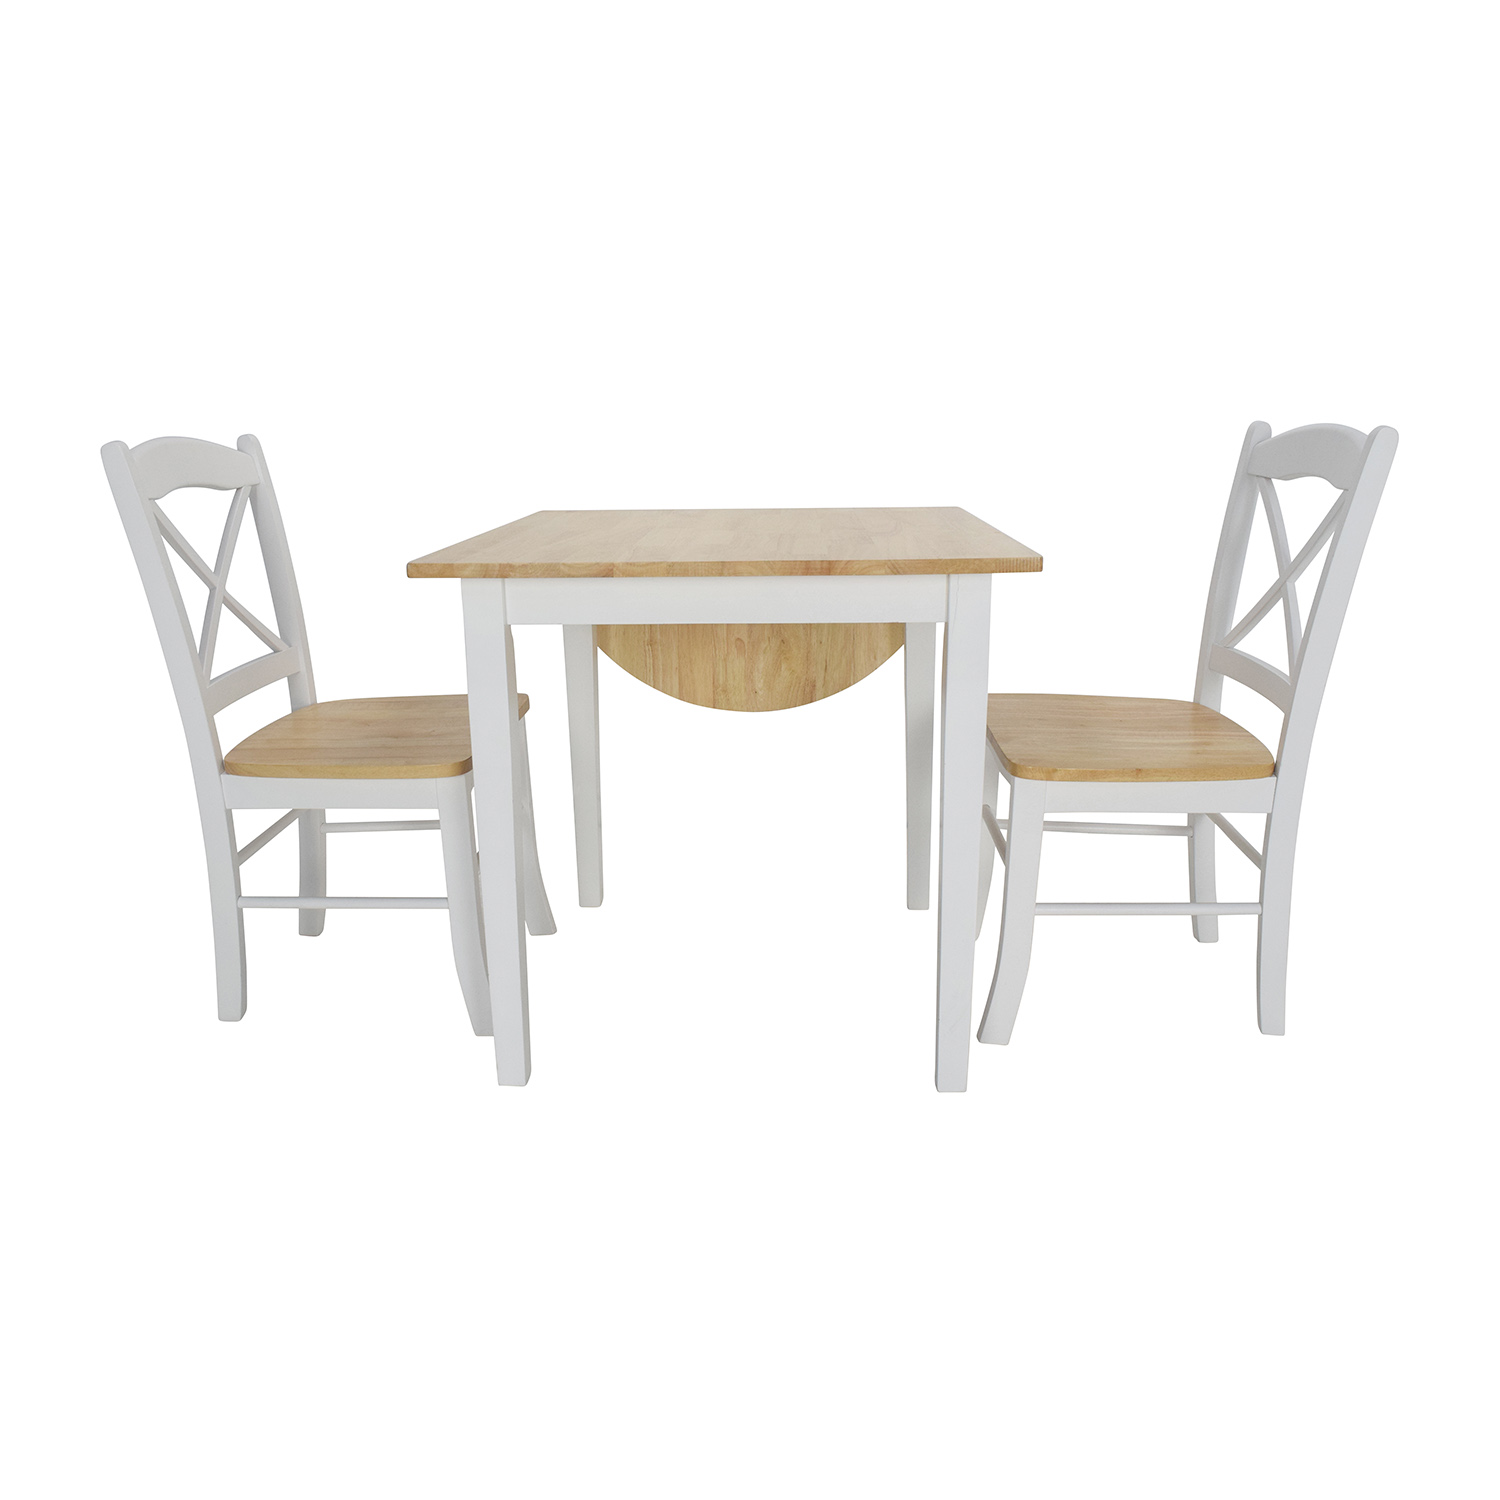 Marge Carson Dining Table Images Borghese Furniture